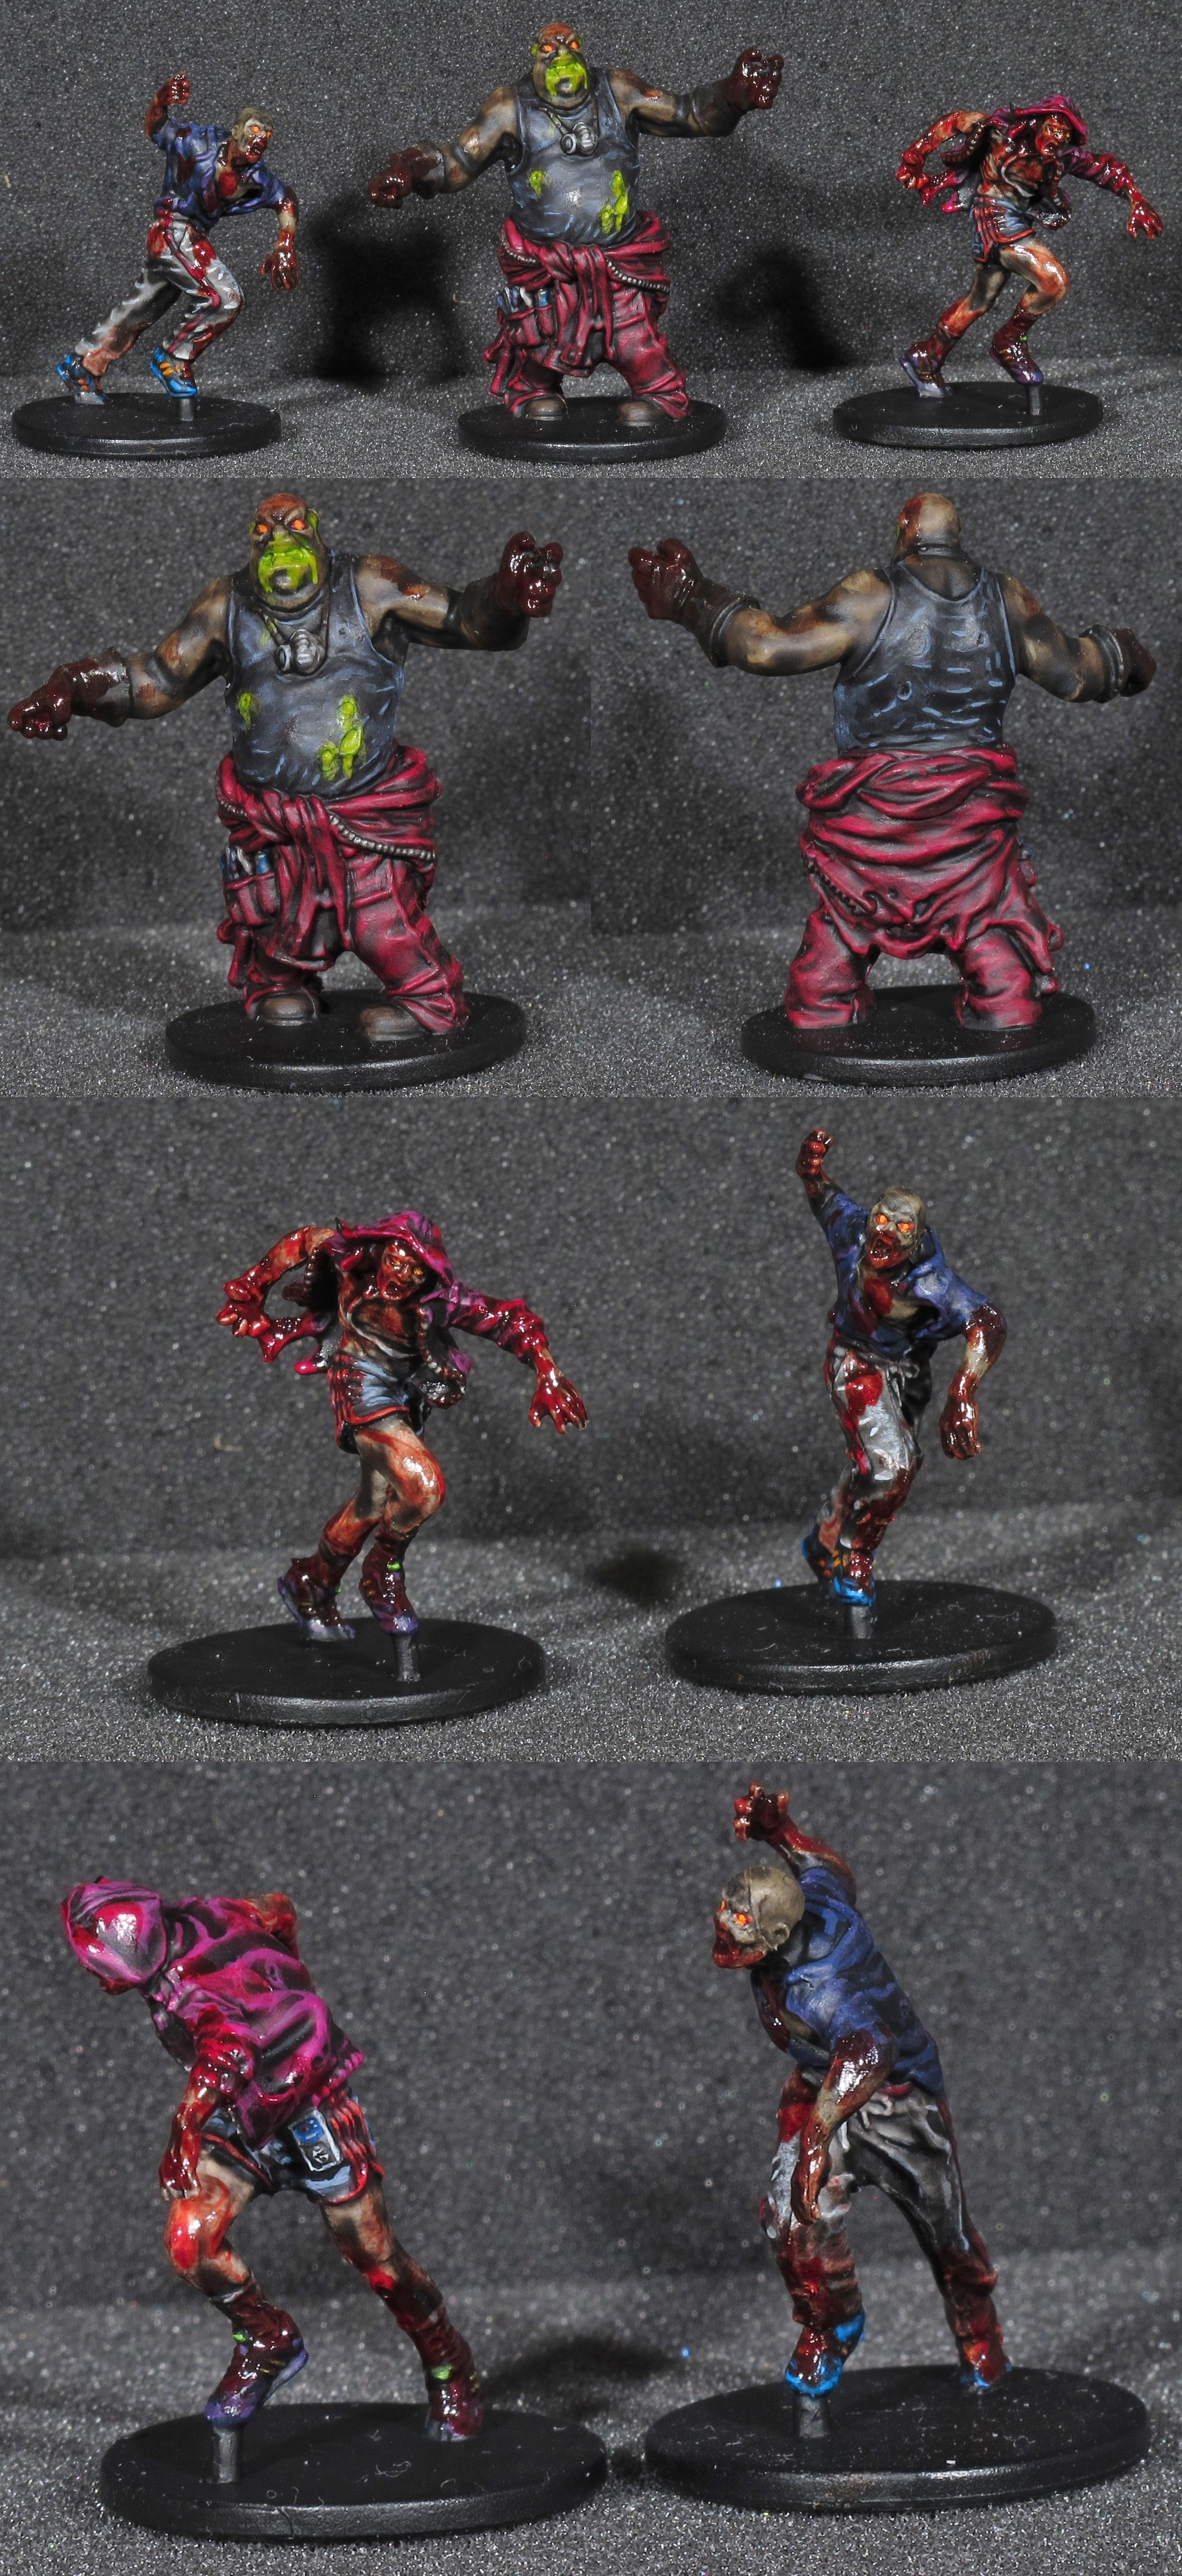 Boardgame, Fatty, Gore, Runners, Toxic, Undead, Zombicide, Zombie